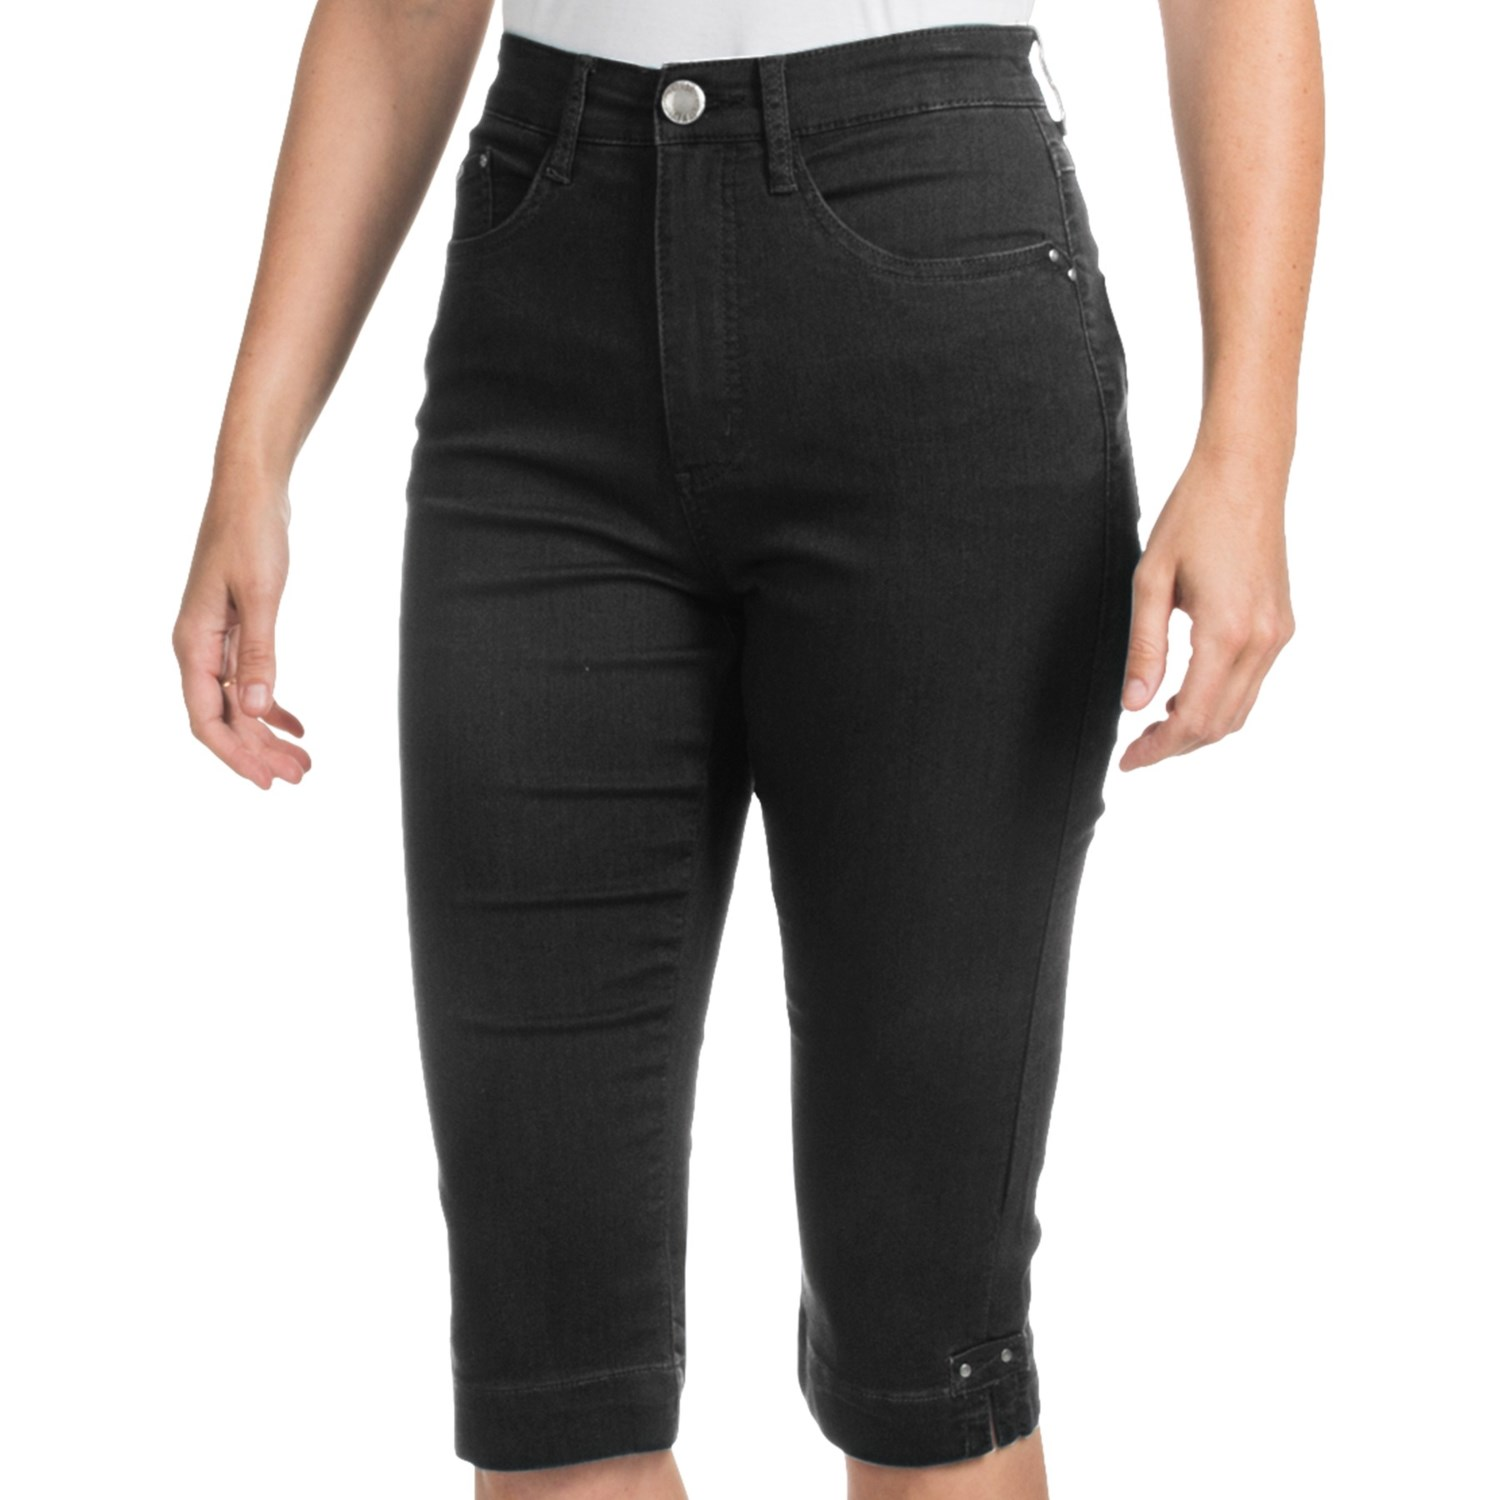 Women's 60s style pants, crop pants, capri pants, cigarette pants, denim jeans, and pedal pushers. High waist, full hip, and a tapered leg was the fashion of the early to mid s. High waist, full hip, and a tapered leg was the fashion of the early to mid s.